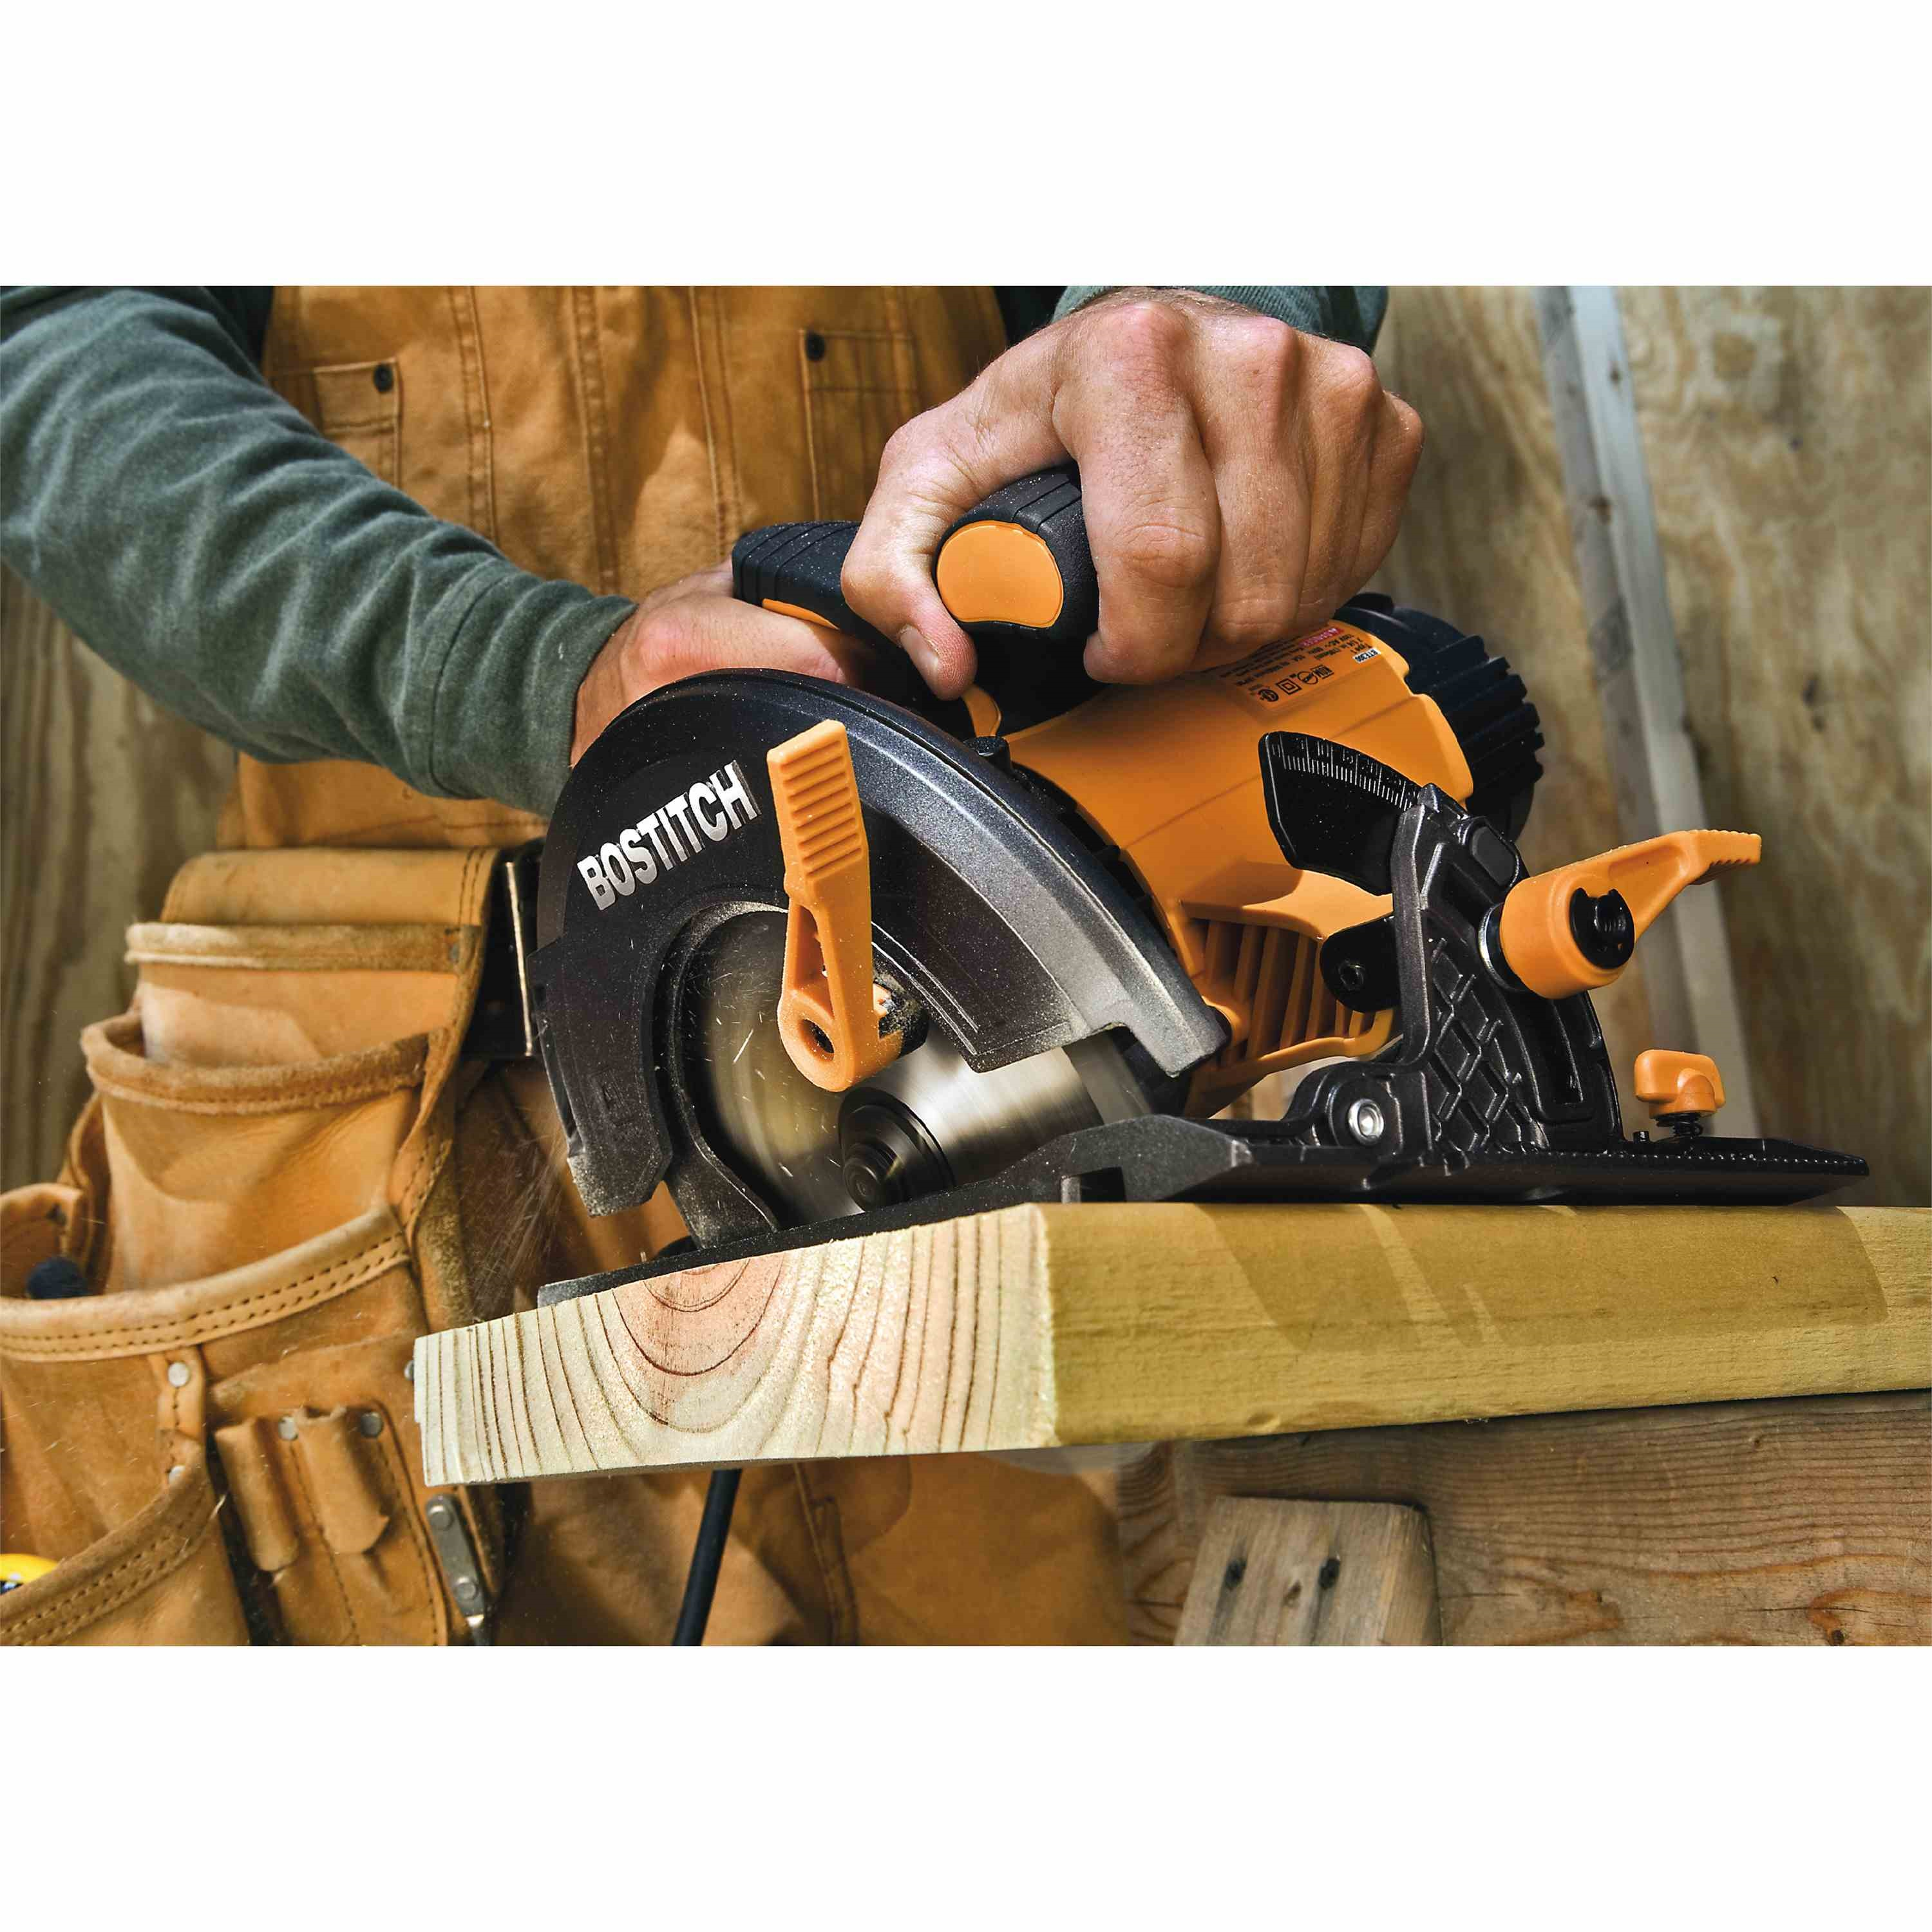 Bostitch - 15 Amp 714 Circular Saw Kit - BTE300K